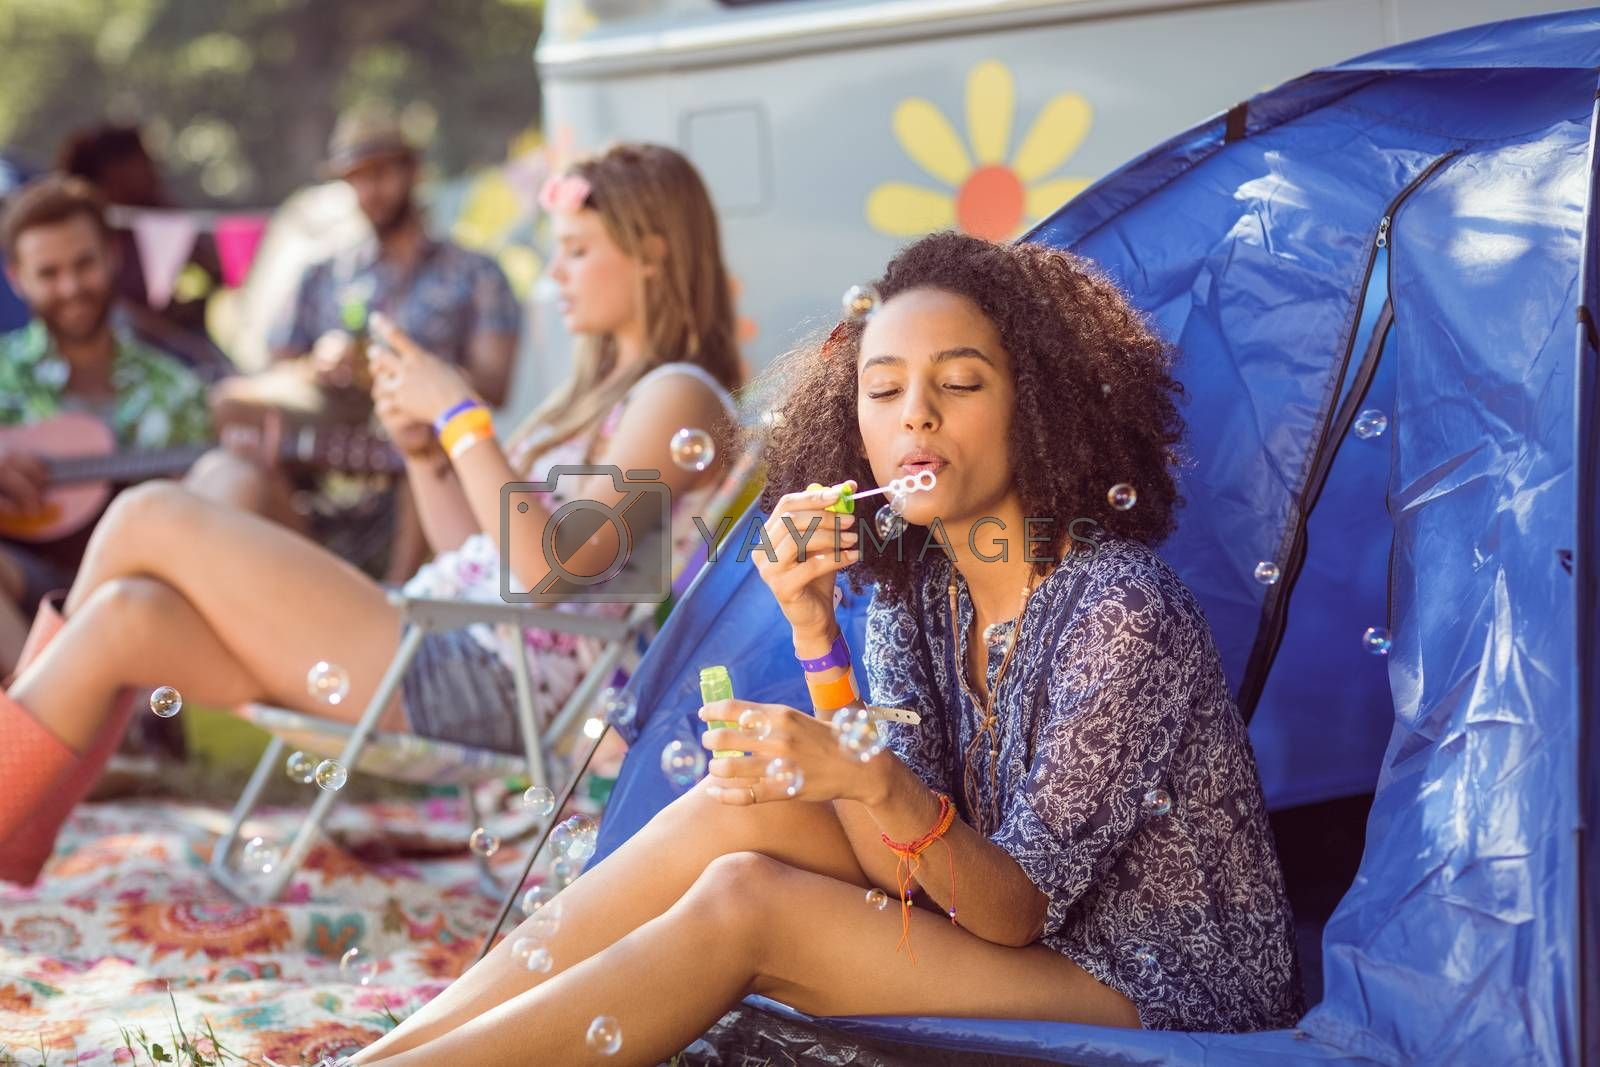 Carefree hipster blowing bubbles in tent at a music festival